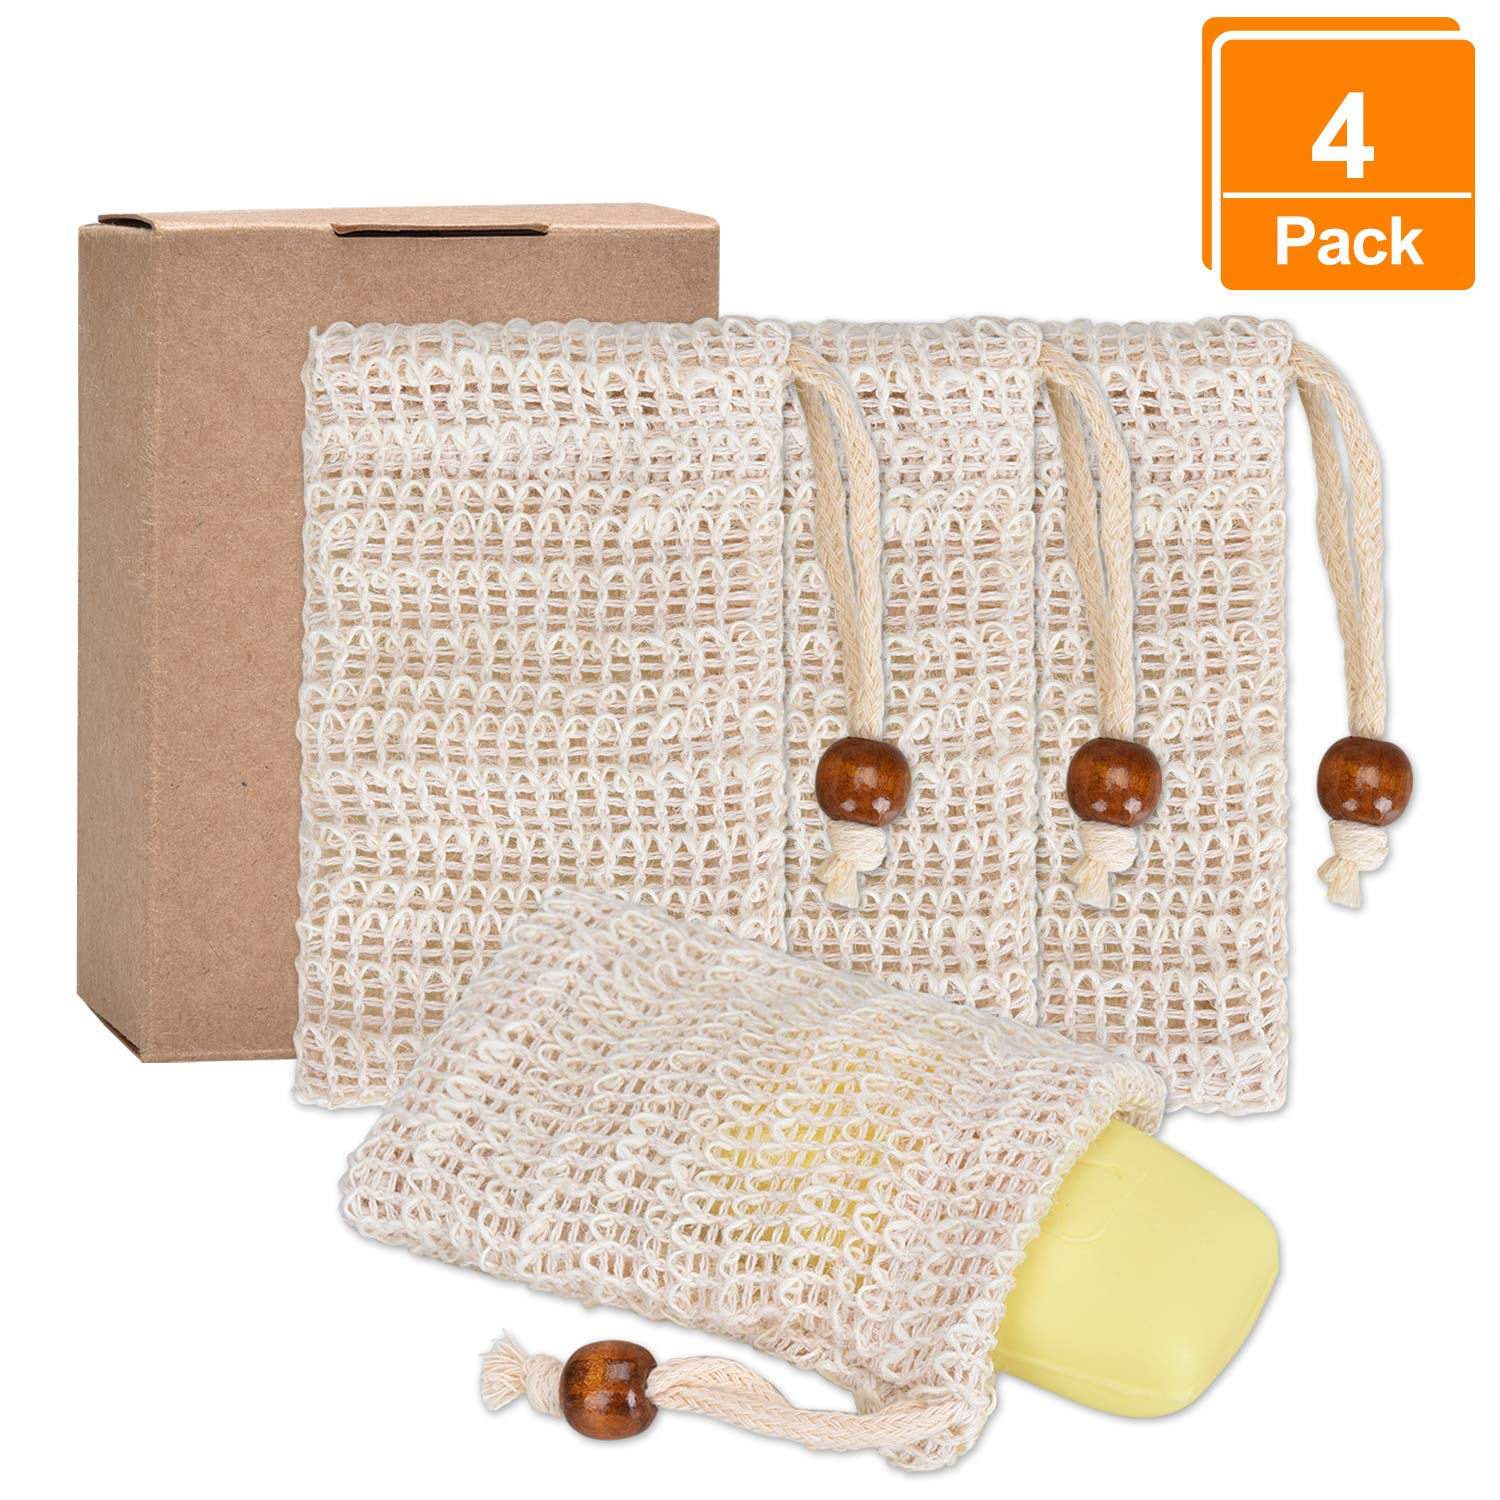 4 PCS Soap Bags, Willingood Natural Soft Exfoliating Sisal Soap Mesh Bag Soap Bar Saver Holder with Drawstring for Handmade Soap